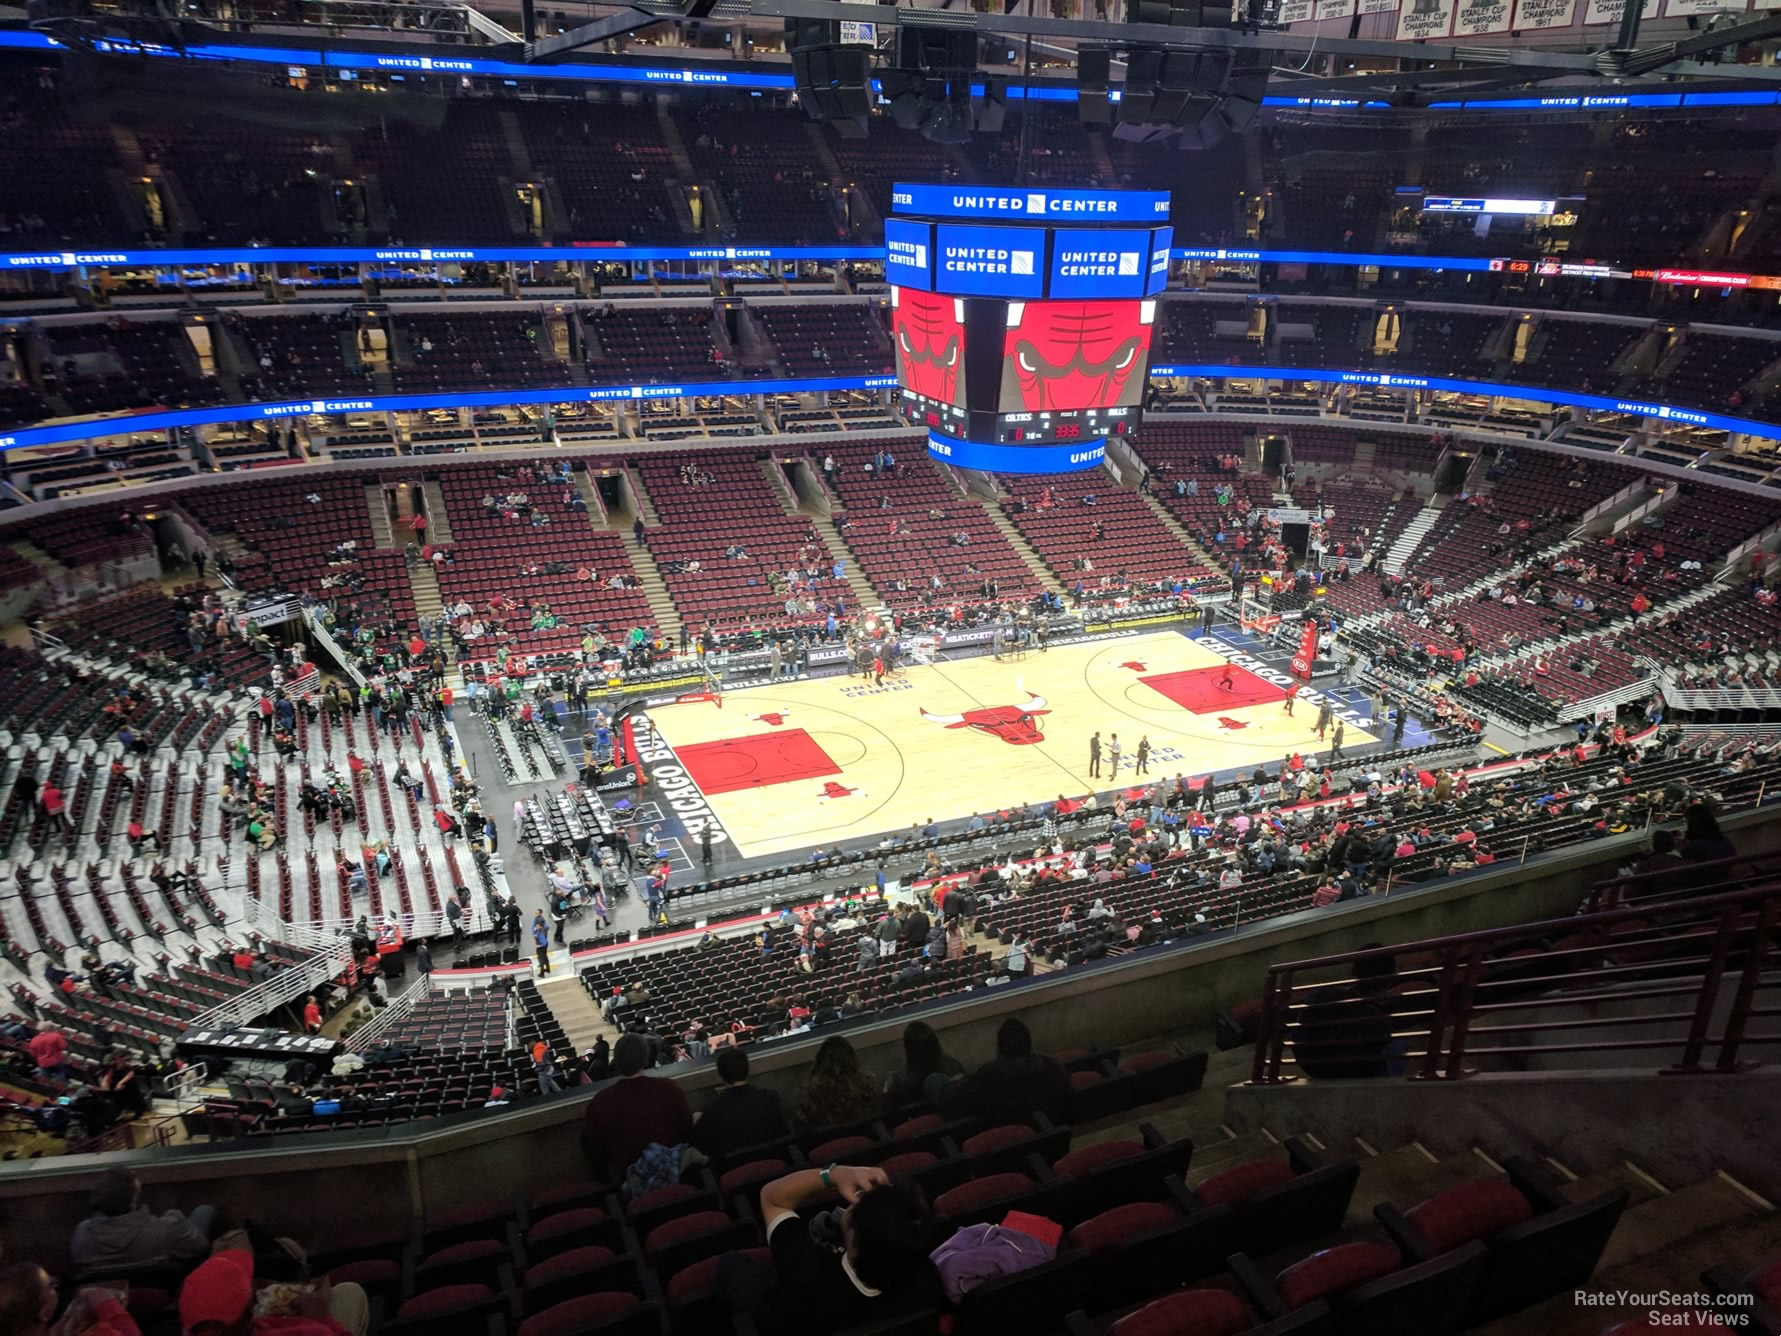 Chicago Bulls Seat View for United Center Section 320, Row 9